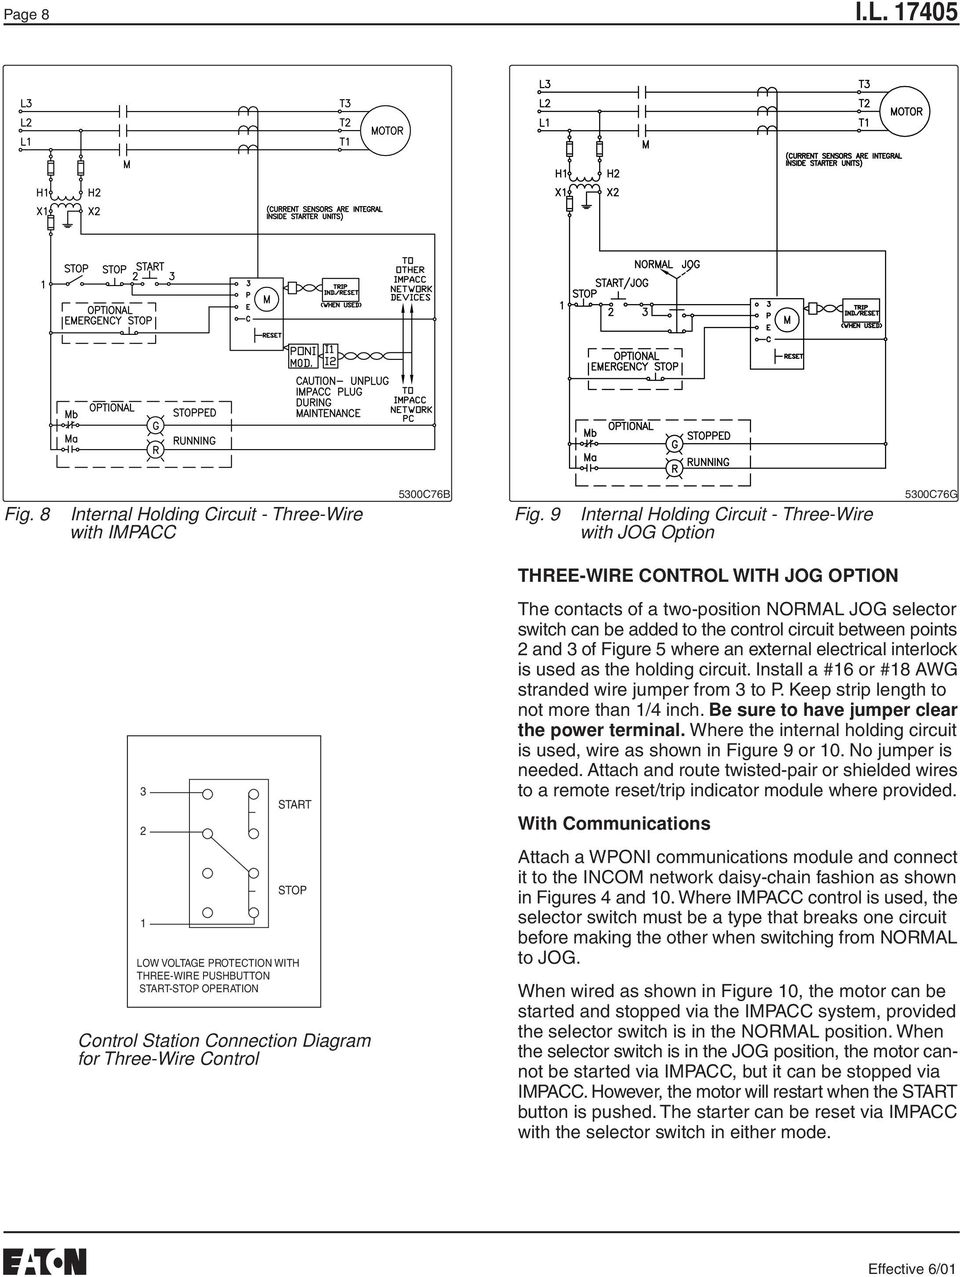 Instructions For Class W200 W201 Sizes 5 And 6 Three Phase Non Controlcircuitwiring5 Wire Control With Jog Option The Contacts Of A Two